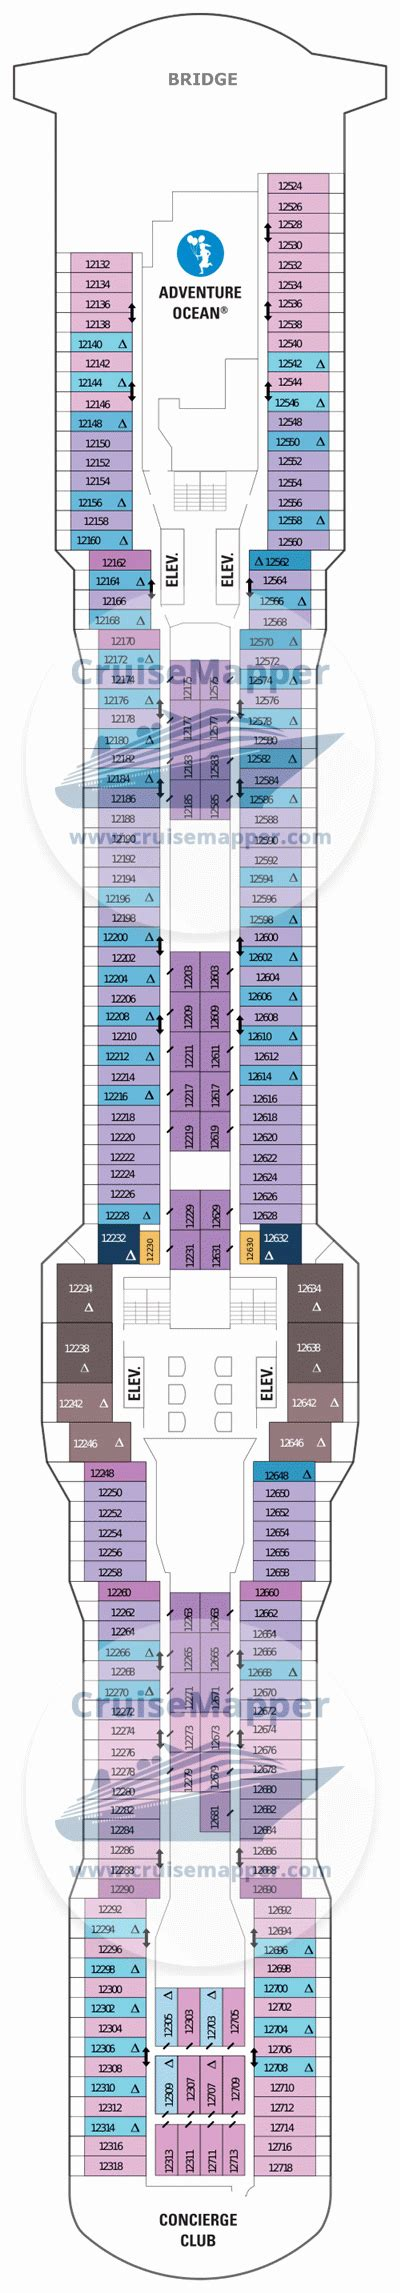 aidaprima deckplan 12 anthem of the seas deck 12 plan cruisemapper